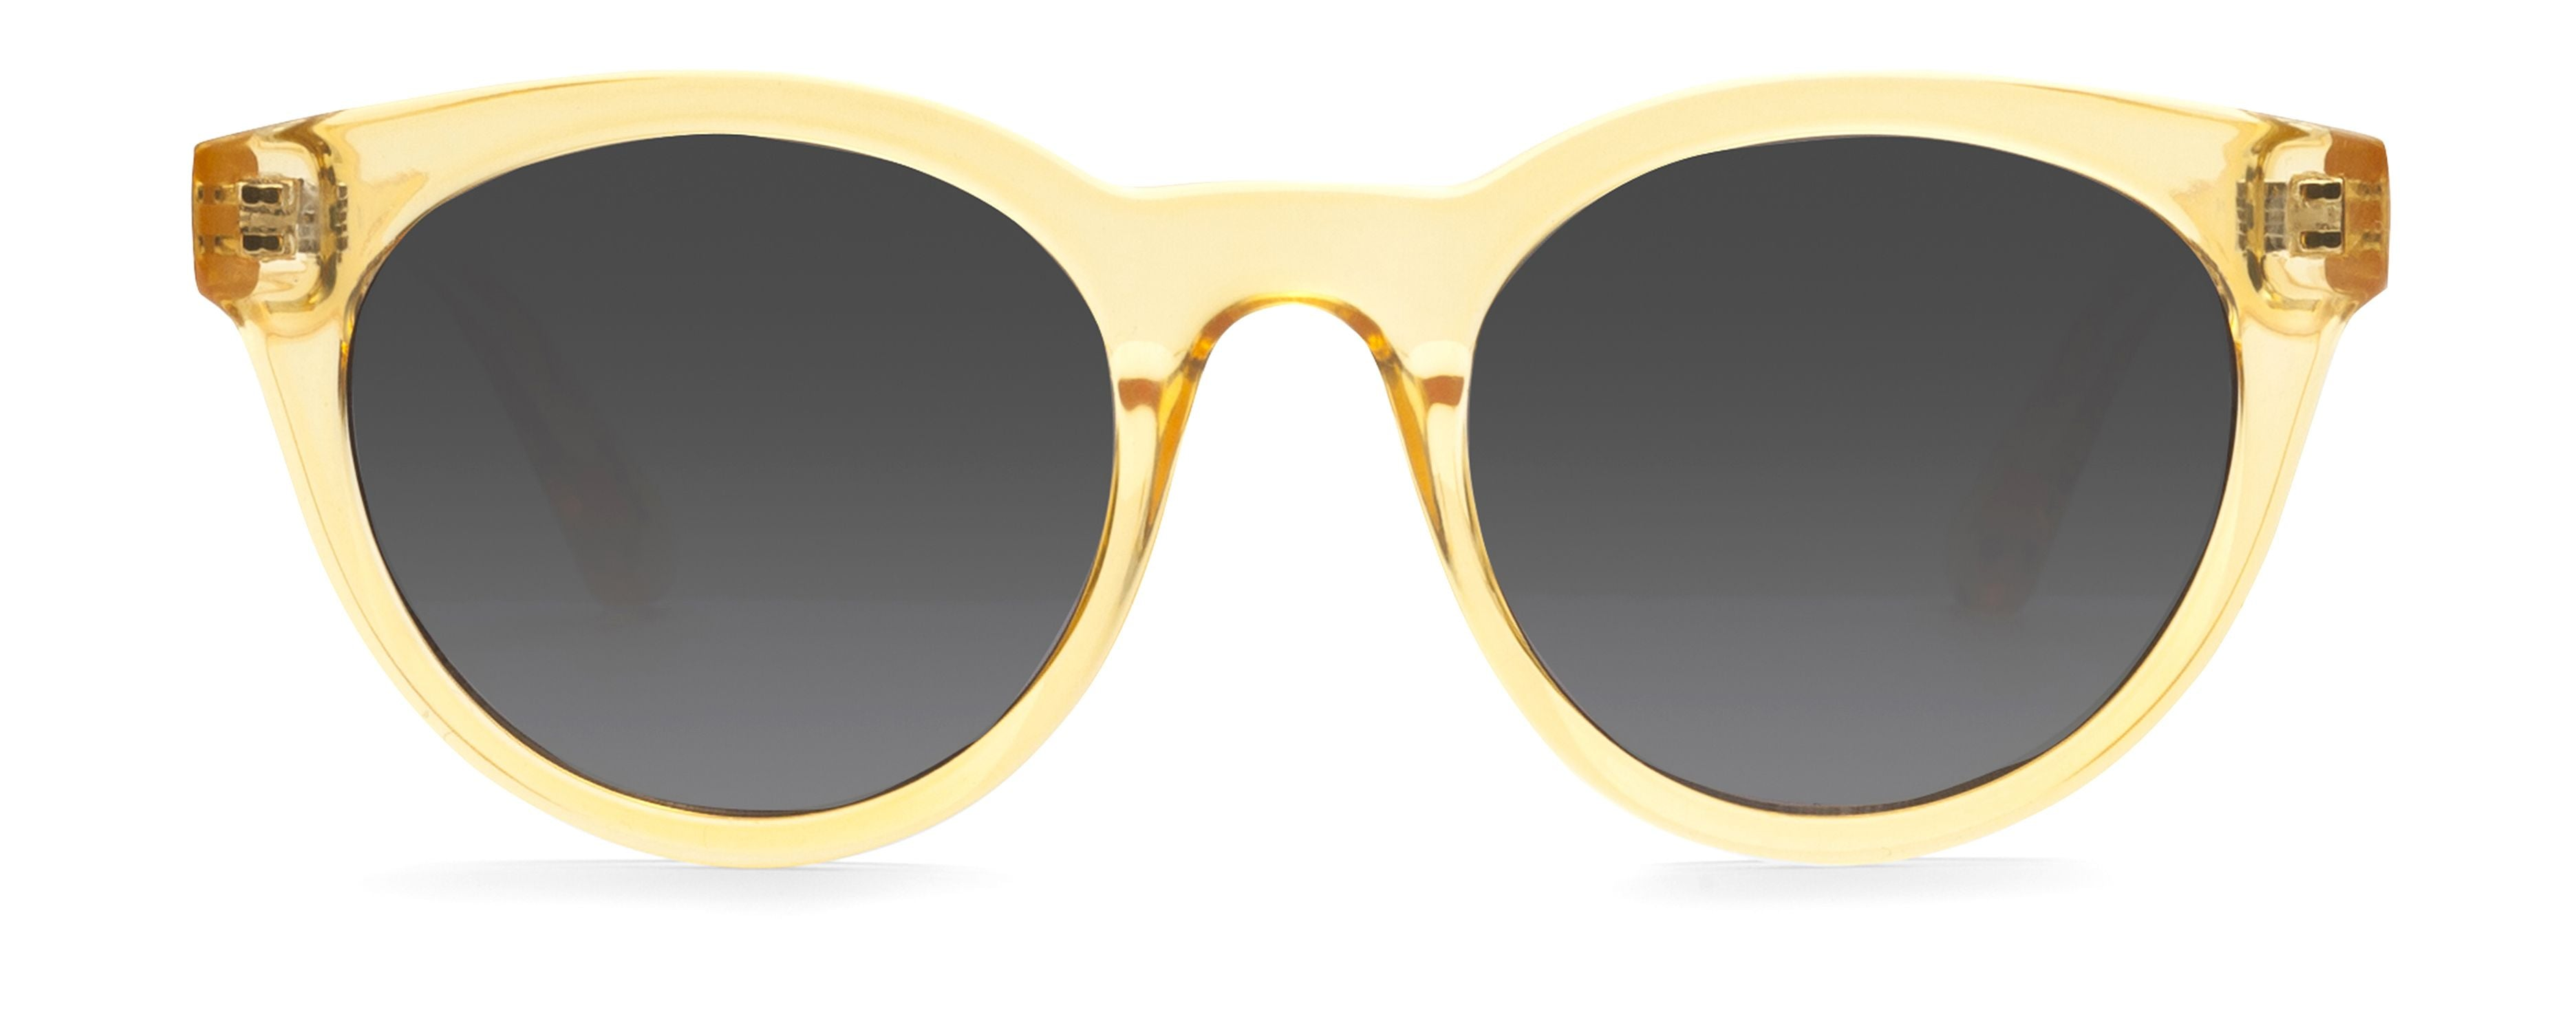 FIZZ Yellow JUNiA Kids Sunglasses